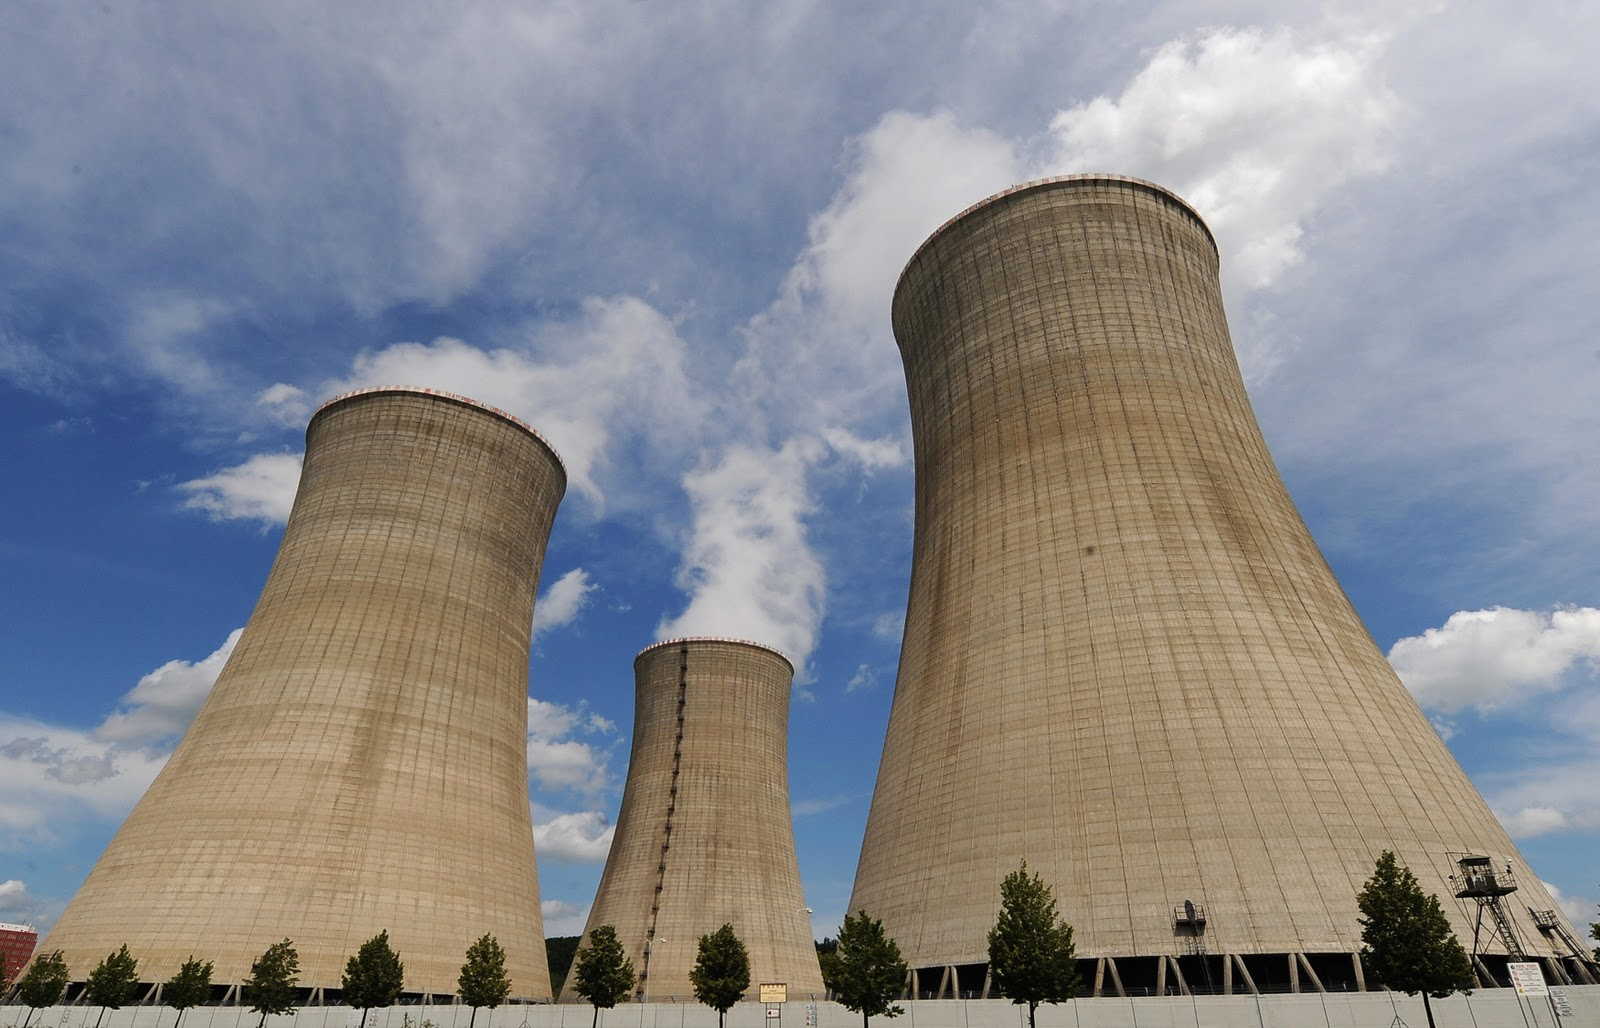 photos of cooling towers nuclear power plants